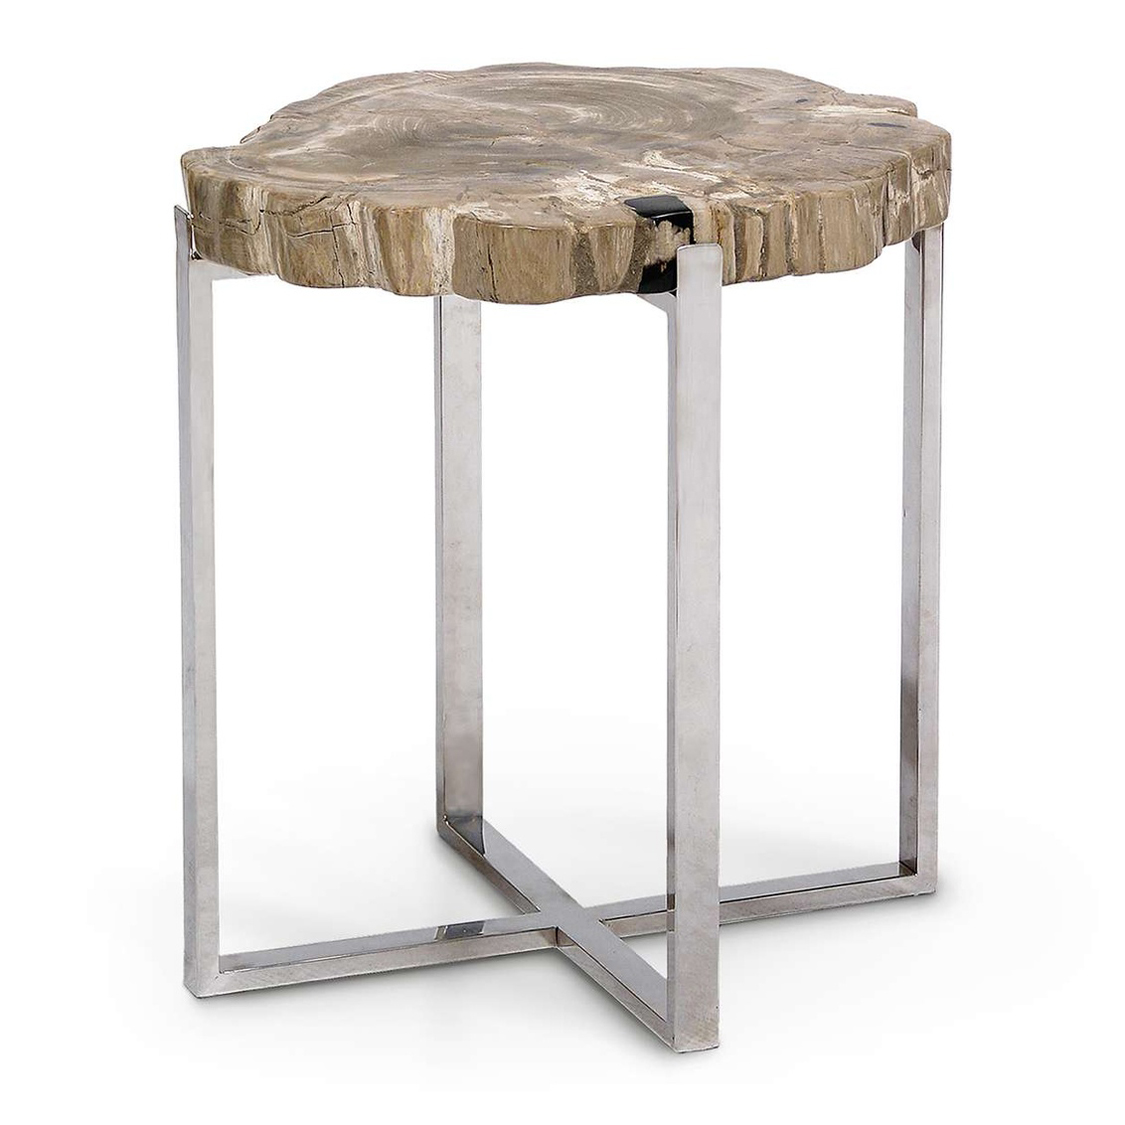 natural artistry accent table with stainless steel legs large wood nautical folding pier one outdoor furniture big lots dresser inch nightstand small metal patio patterned